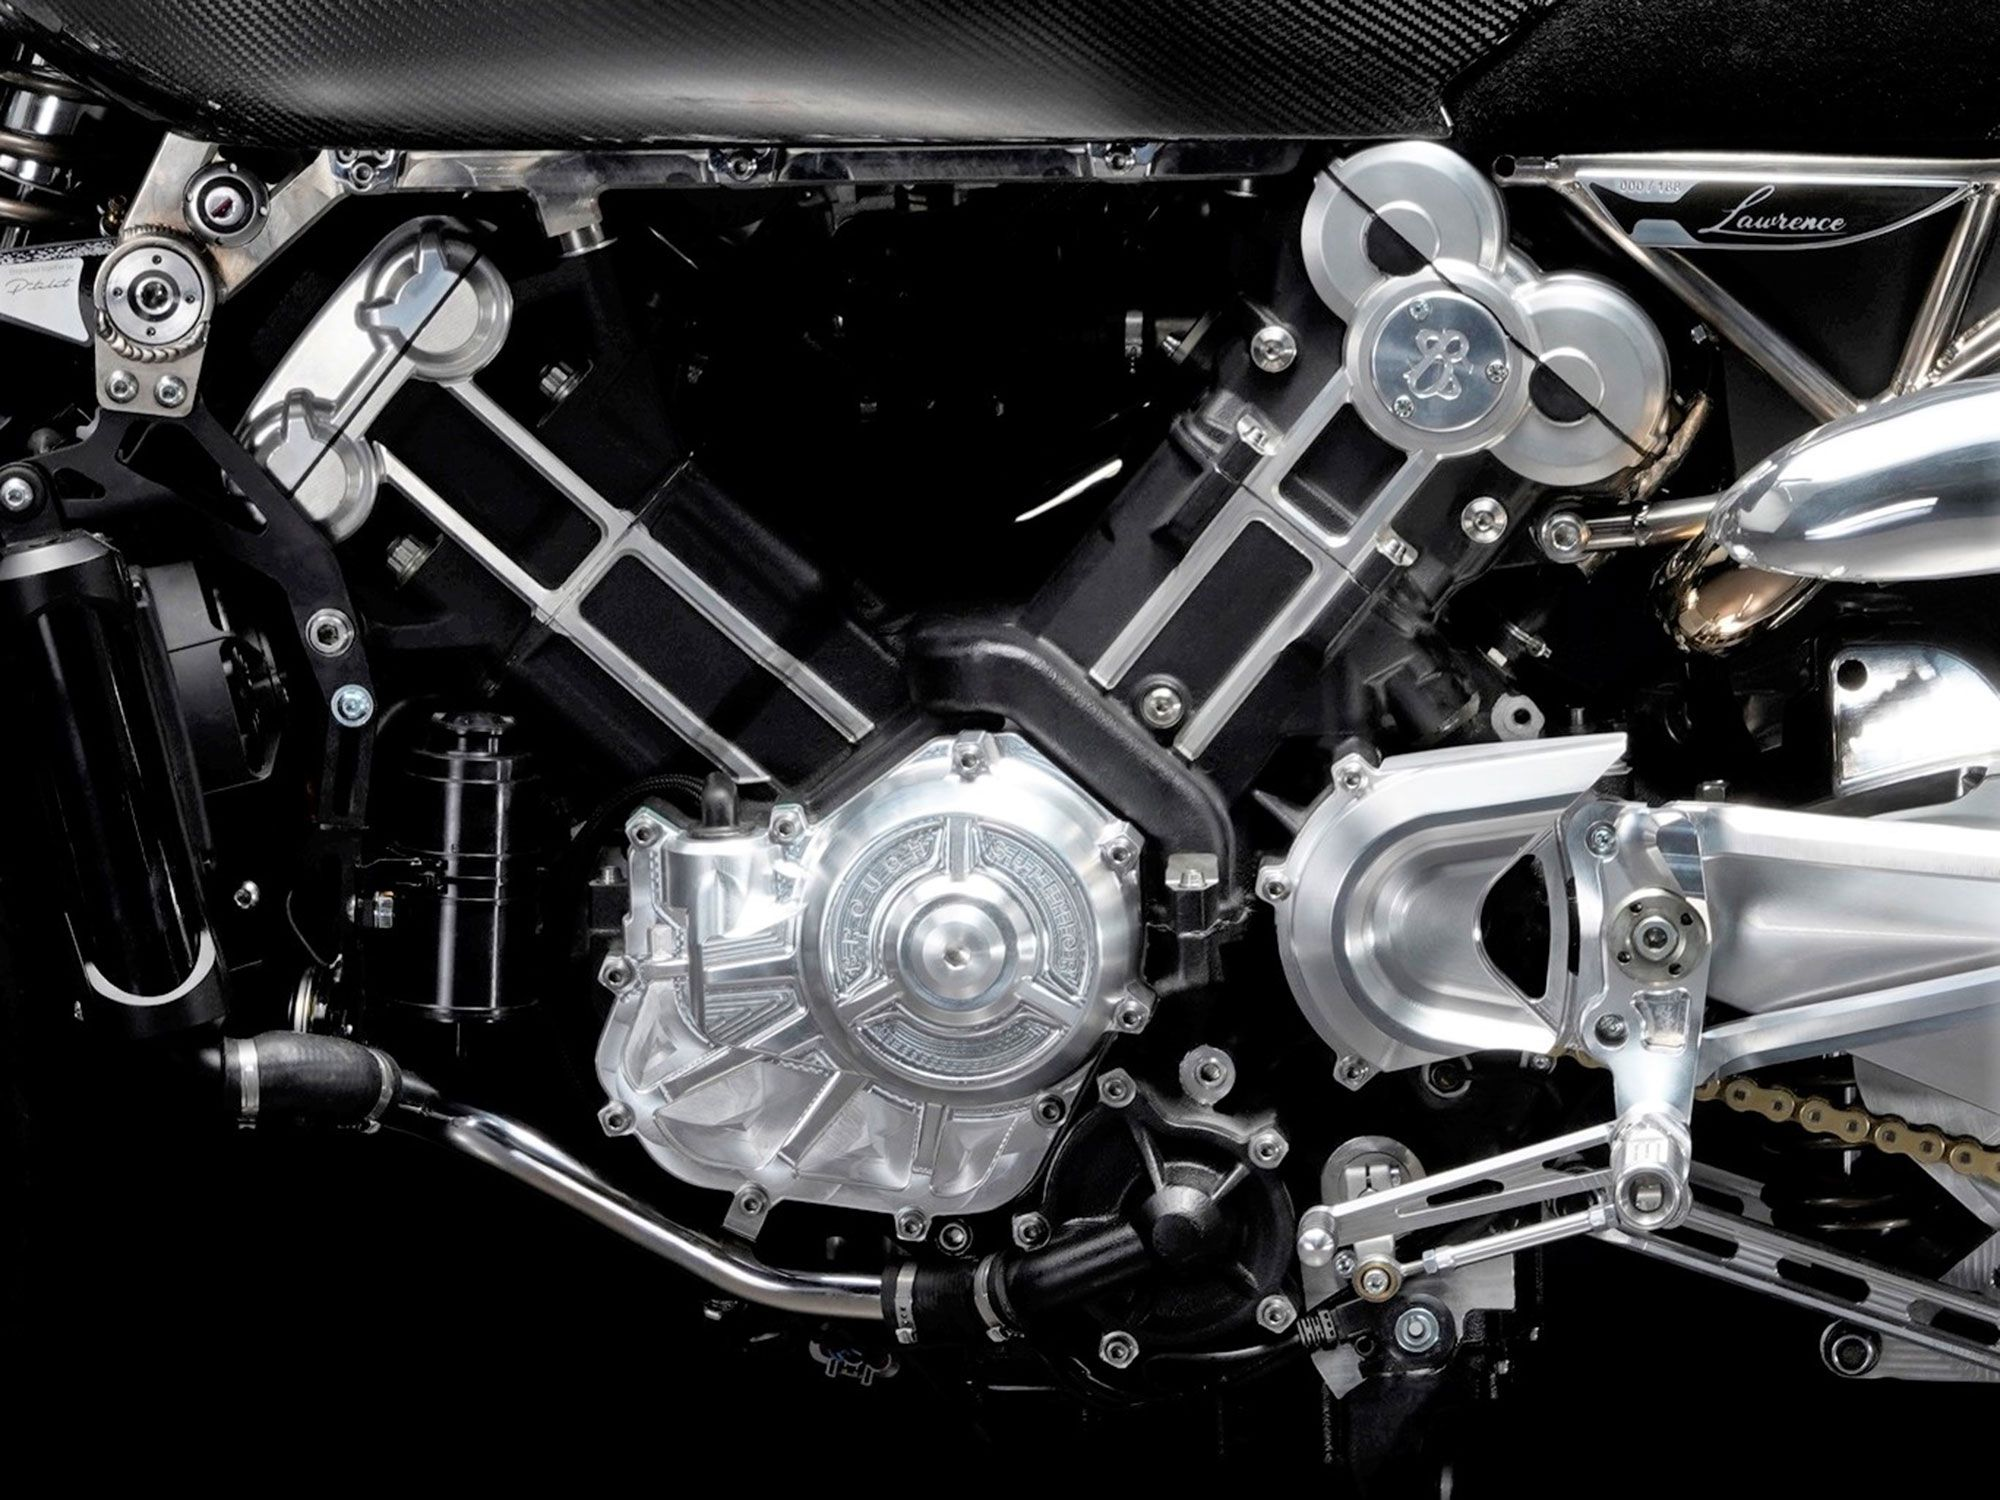 The Lawrence is powered by Brough's in-house water-cooled, 997cc, eight-valve V-twin, claimed to output 102 hp.